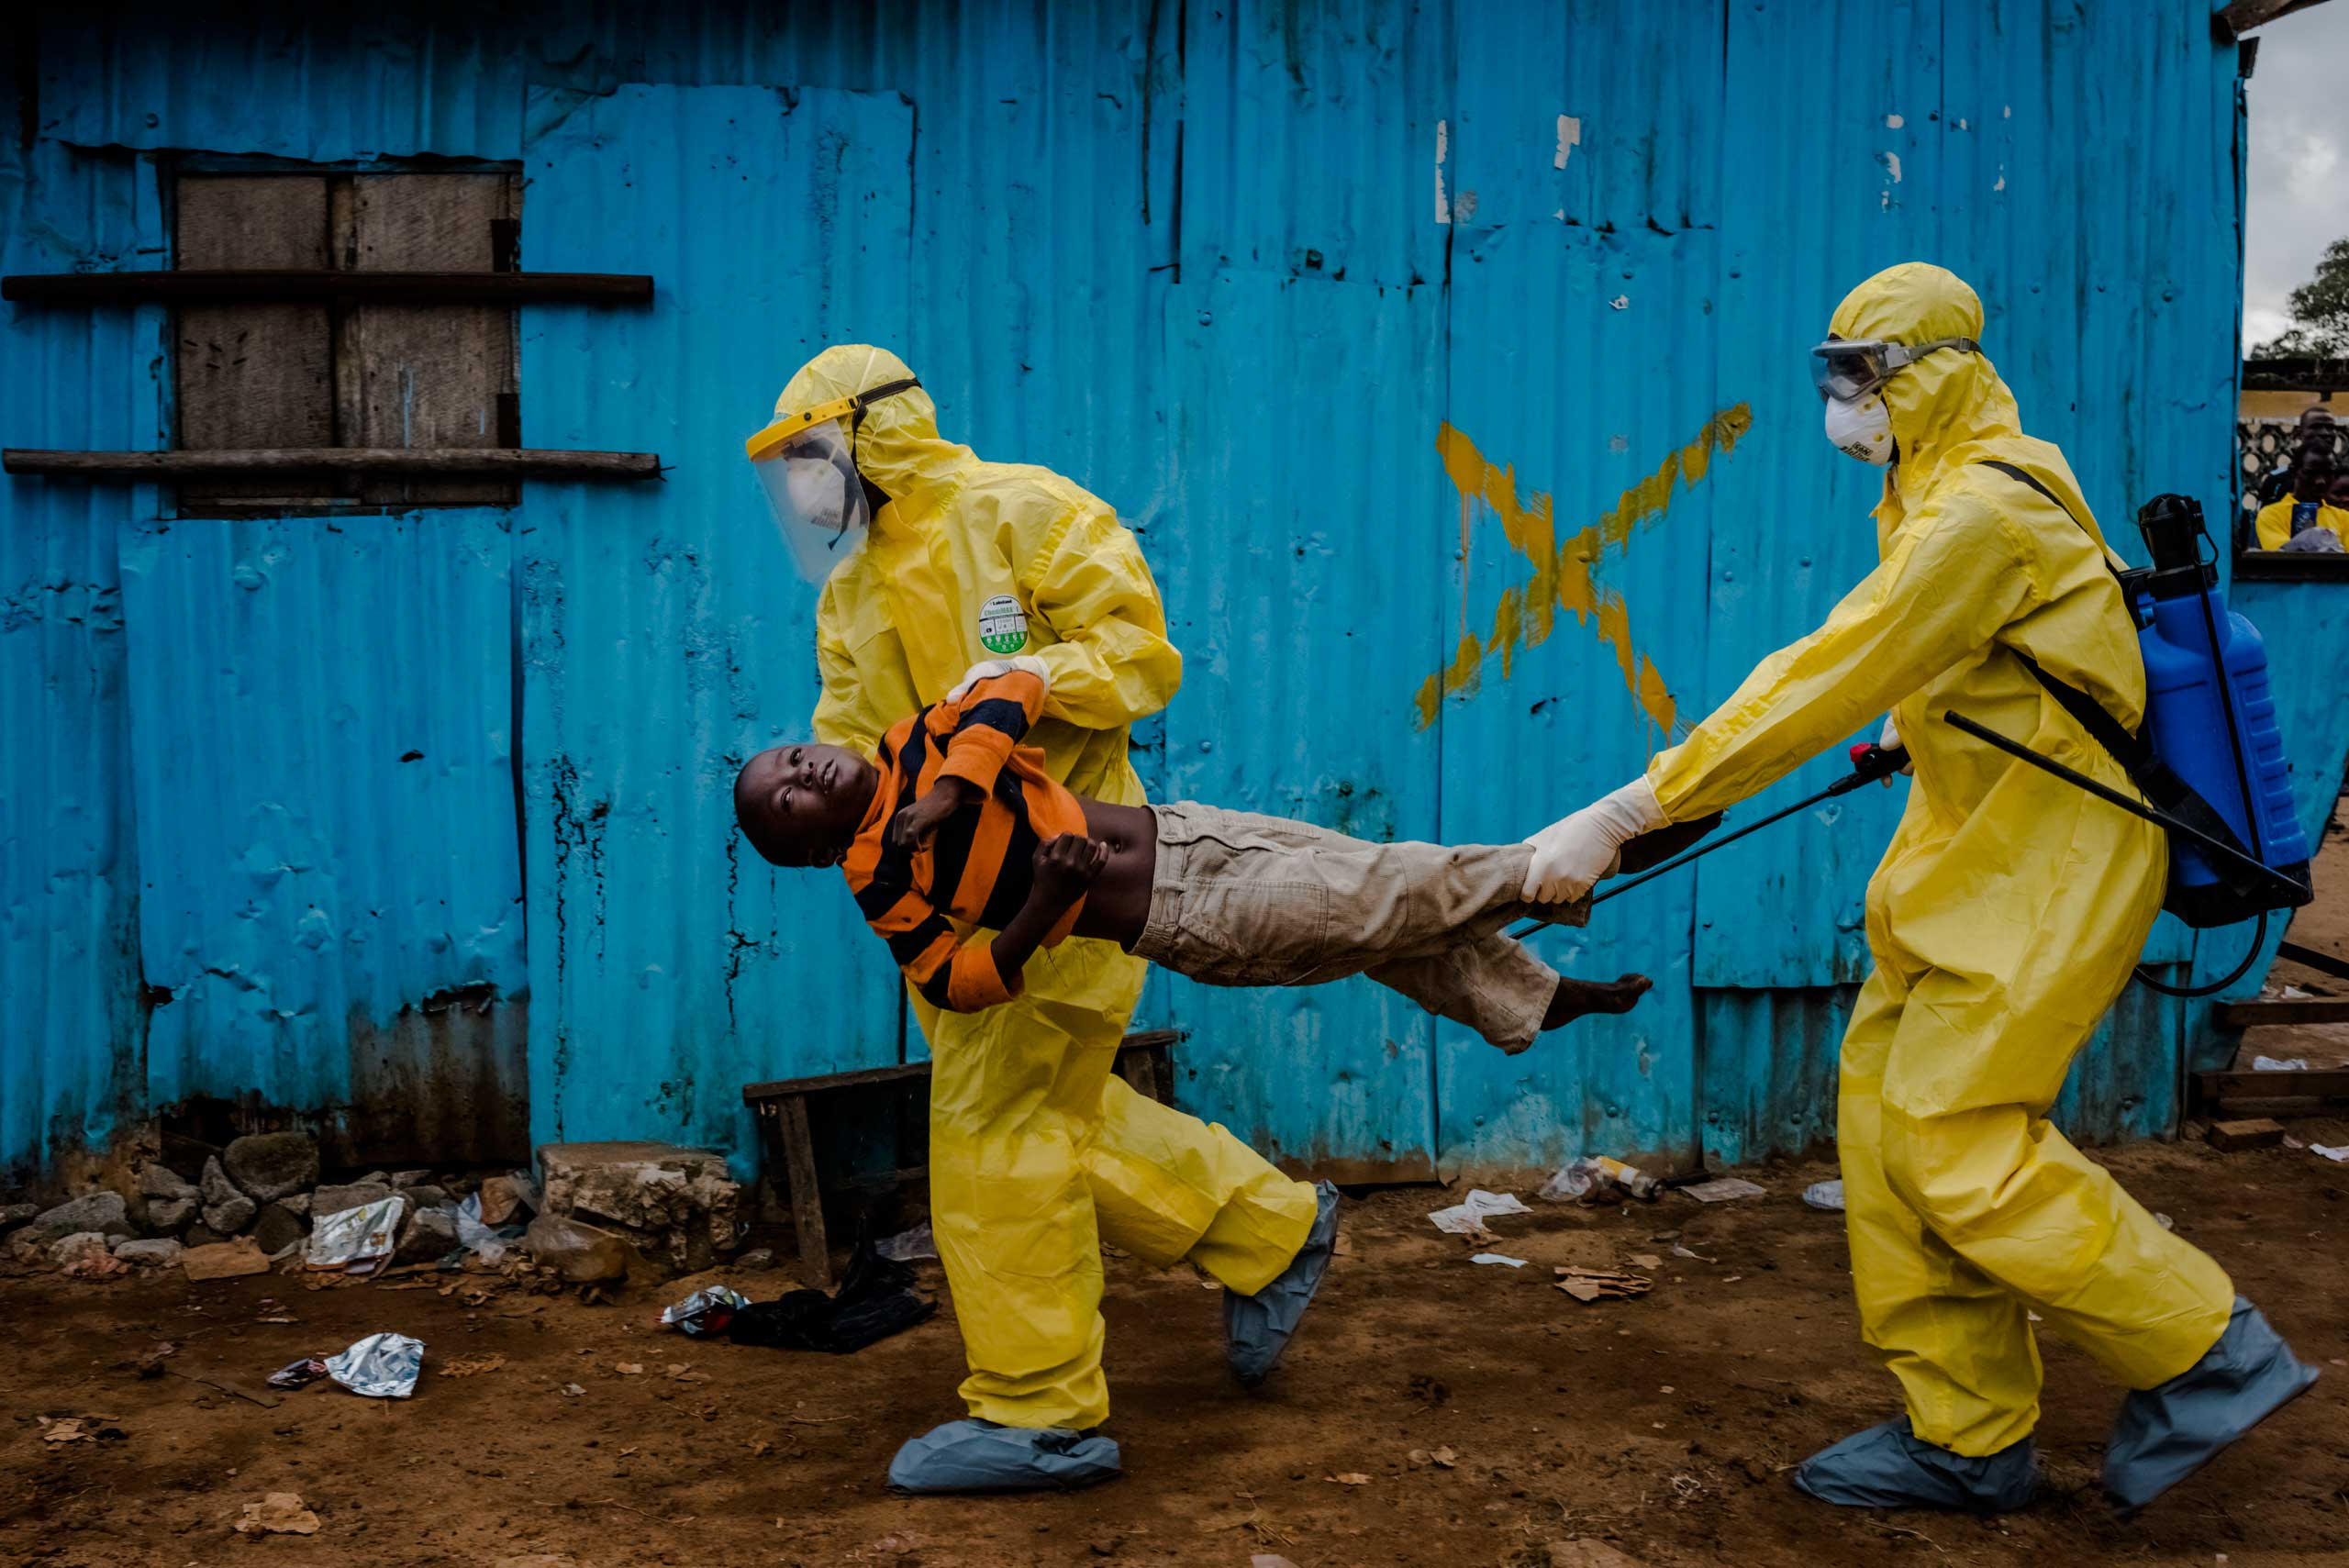 Picture of the Year Istanbul Photo AwardsJames Dorbor, 8, an Ebola victim, is rushed by medical staff wearing protective clothing into the JFK Ebola treatment center,  September 05, 2014 in Monrovia, Liberia.